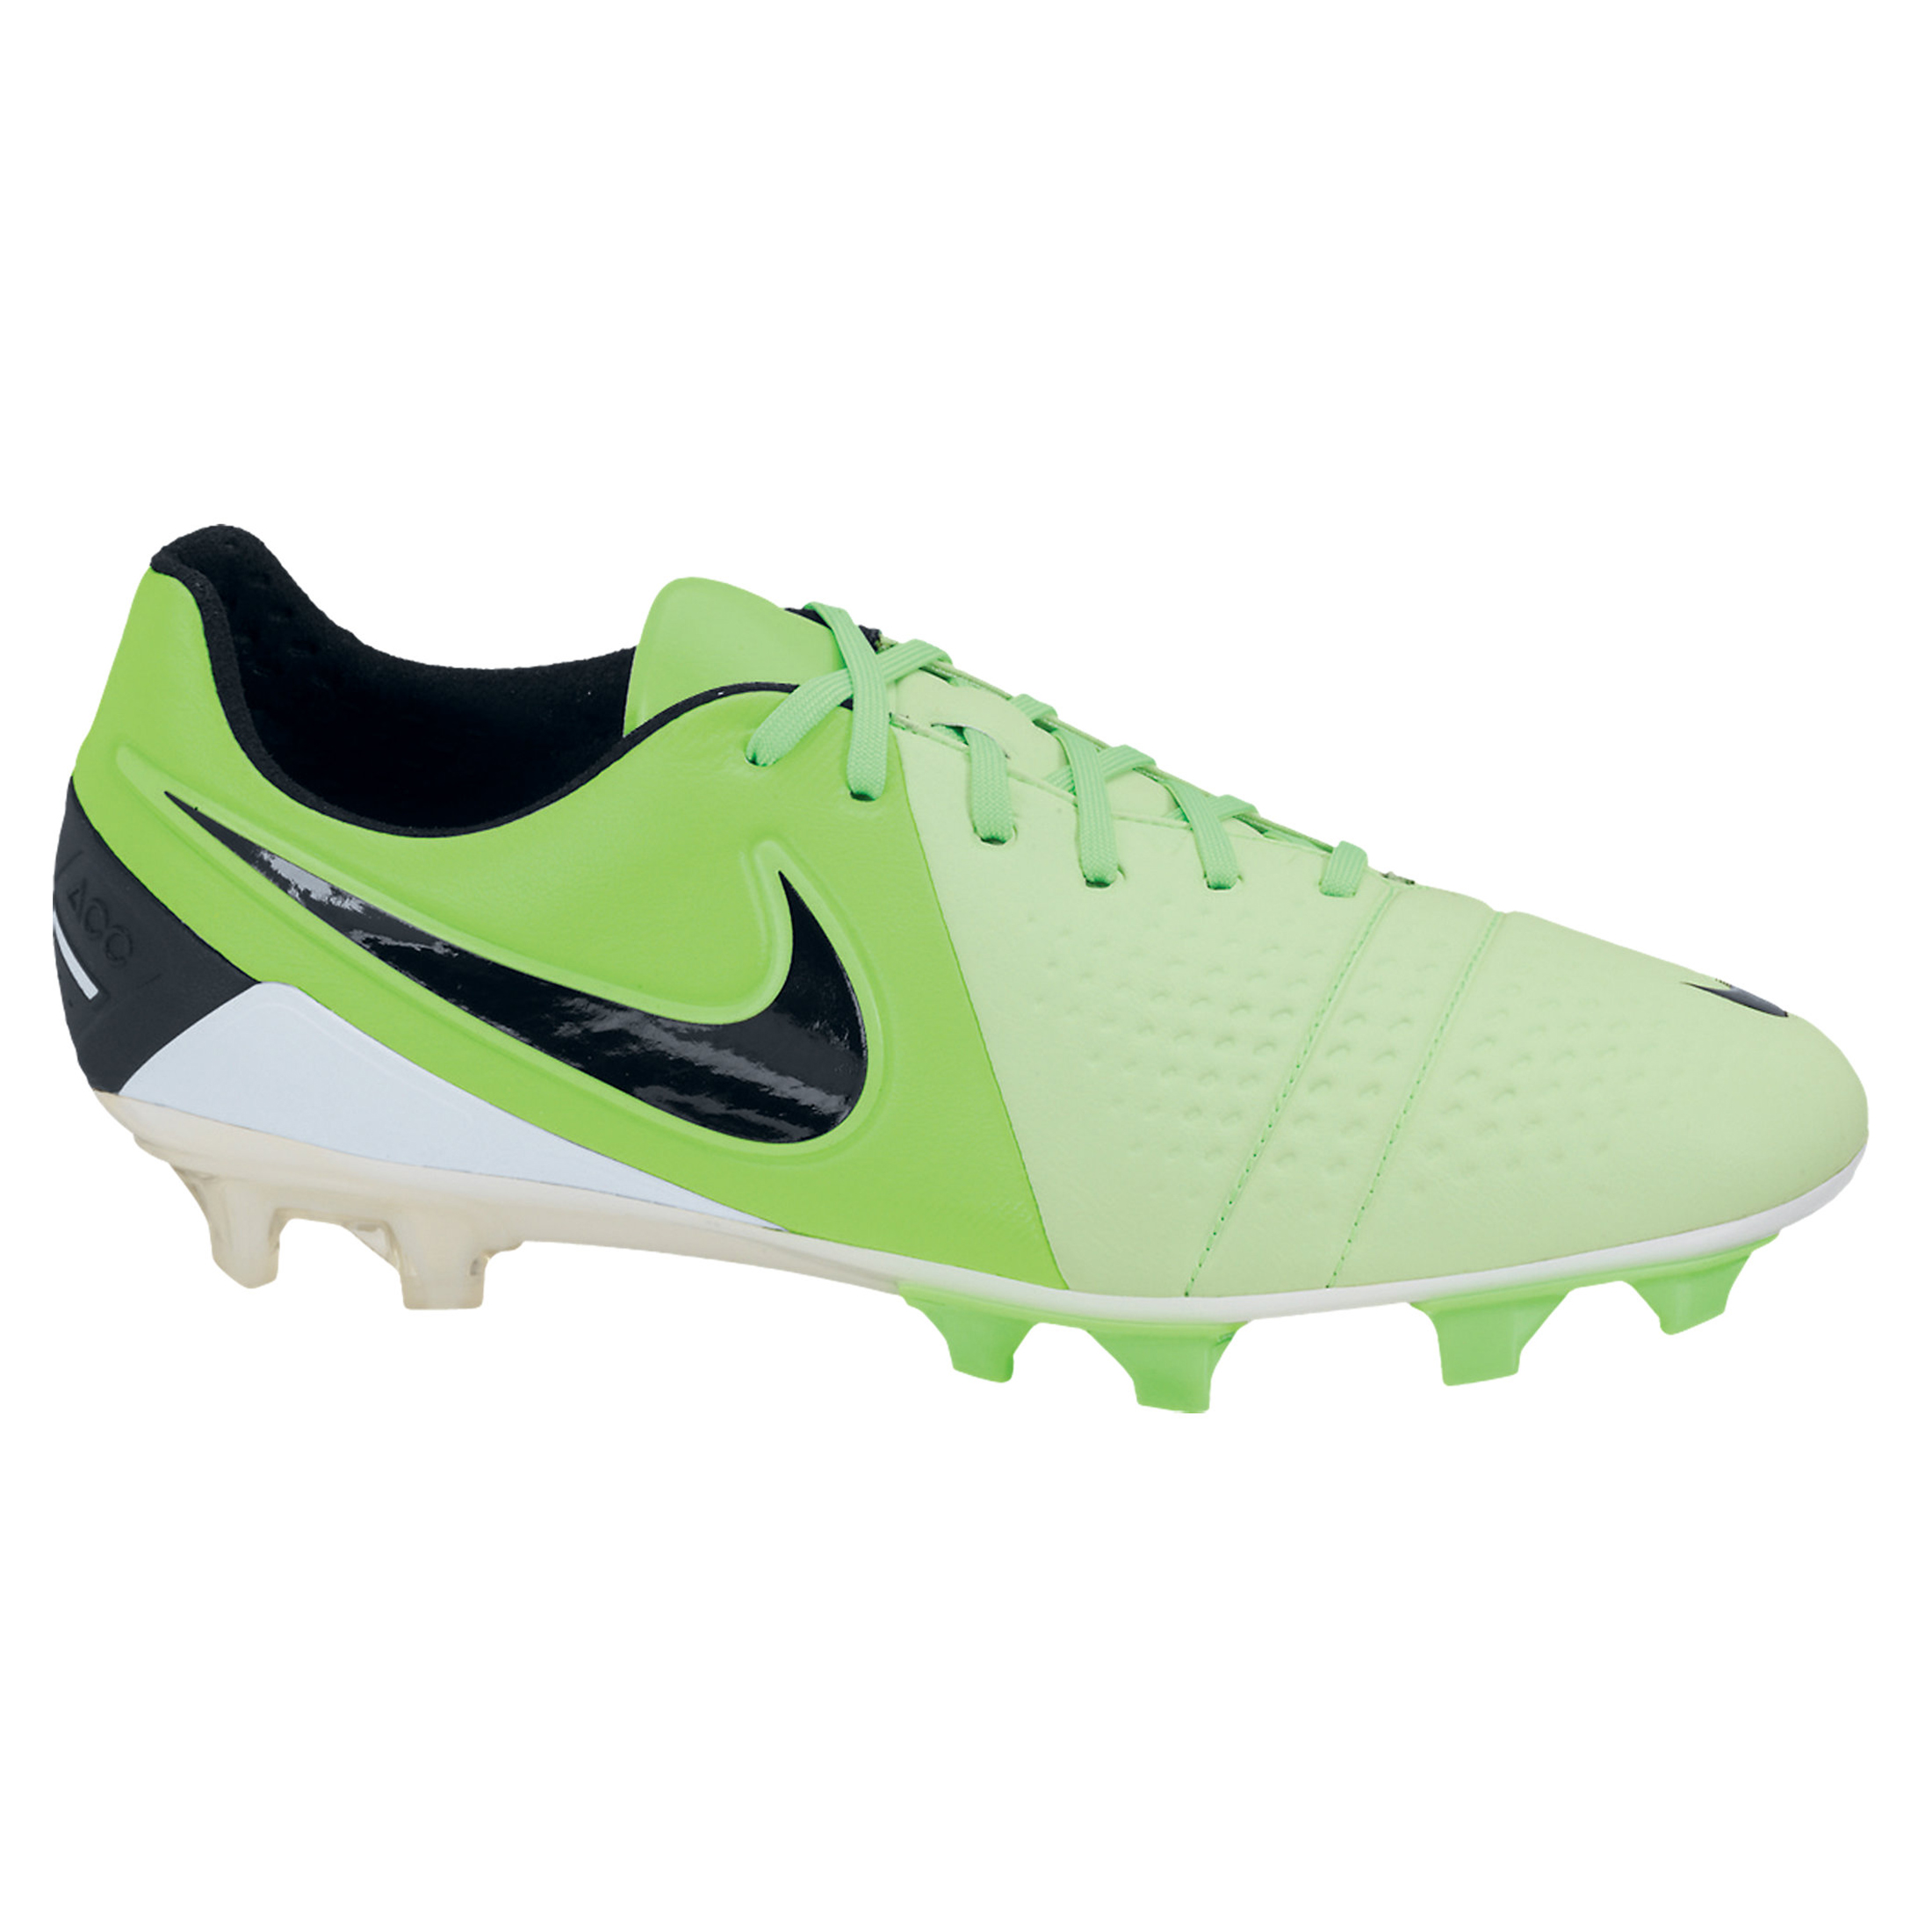 Nike CTR360 Maestri III Firm Ground Football Boots - Fresh Mint/Black/Neo Lime